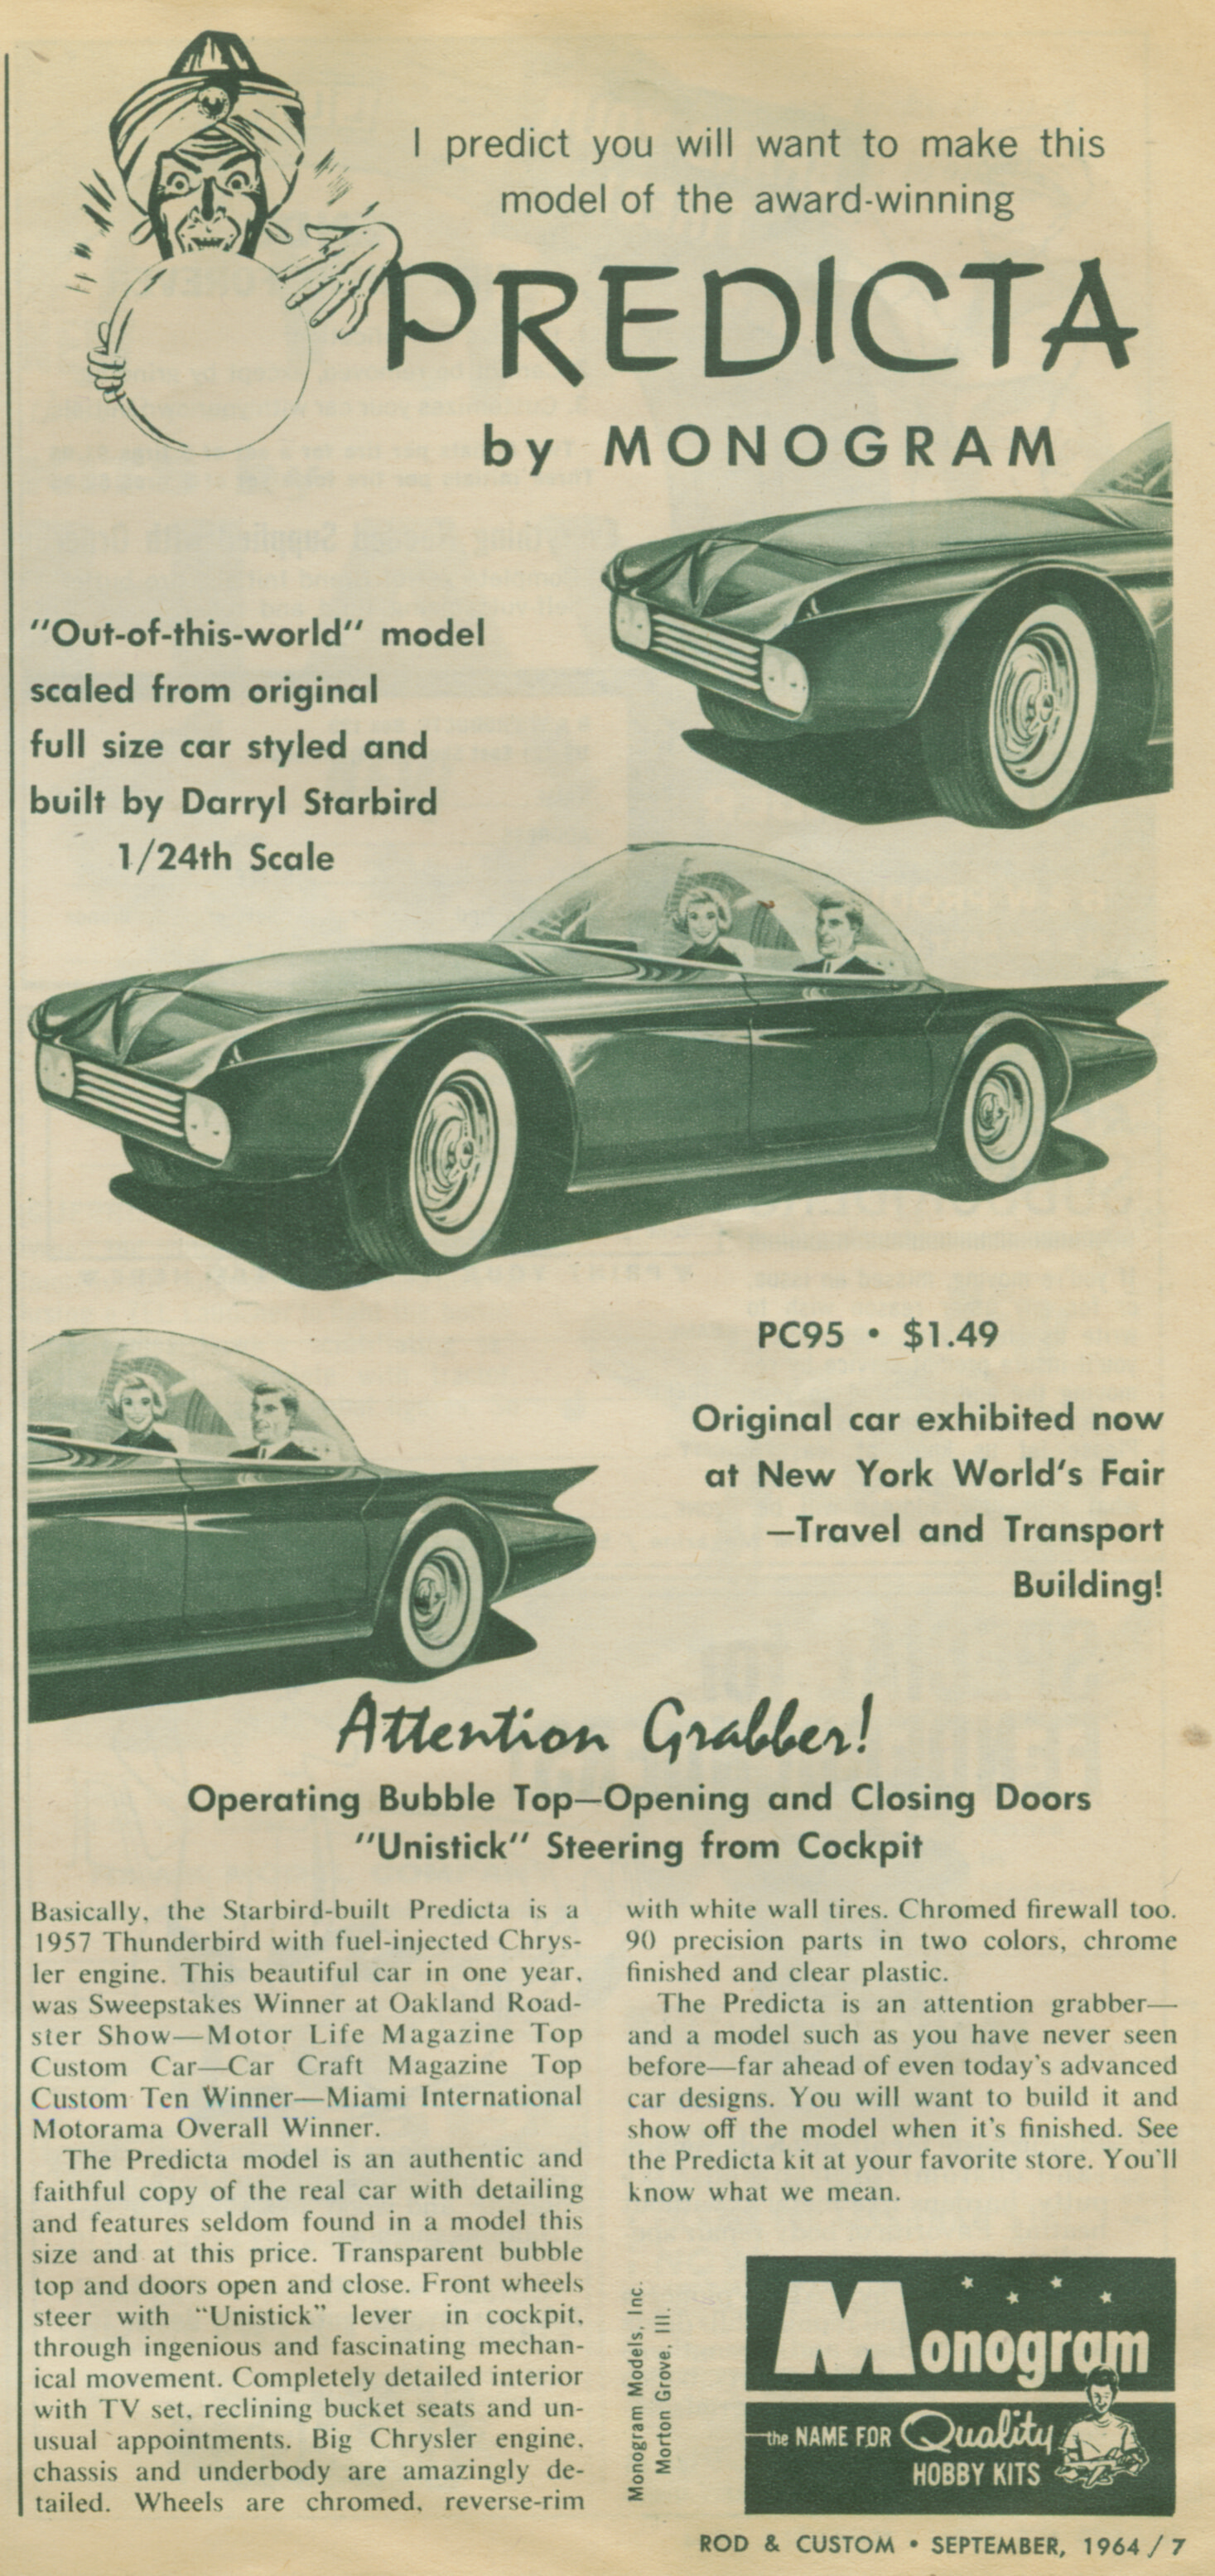 This popular advert will substitute an image of the enhanced model in place of the image printed in 1964.